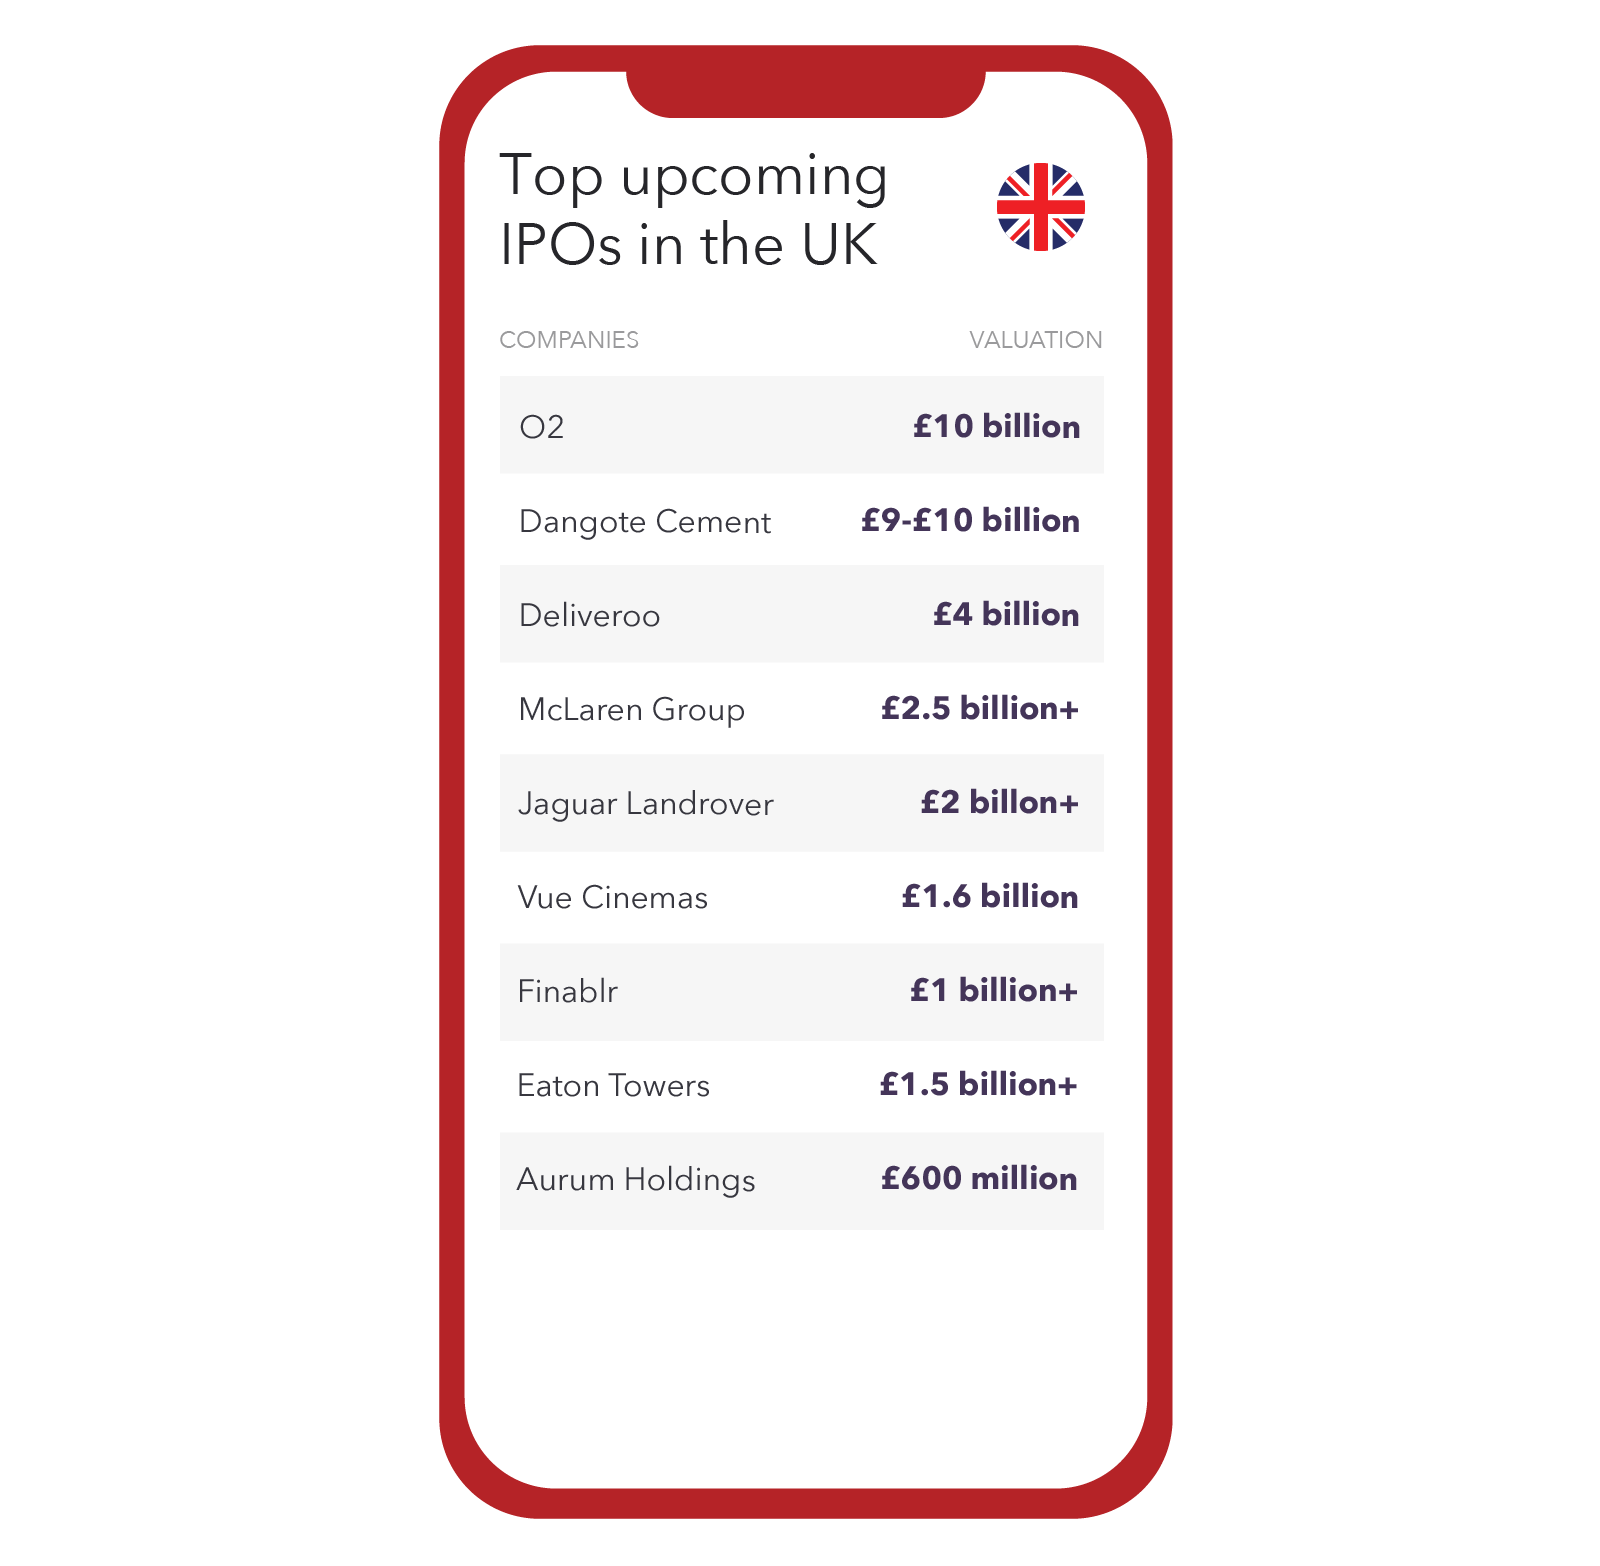 Top upcoming IPOs in the UK 2019